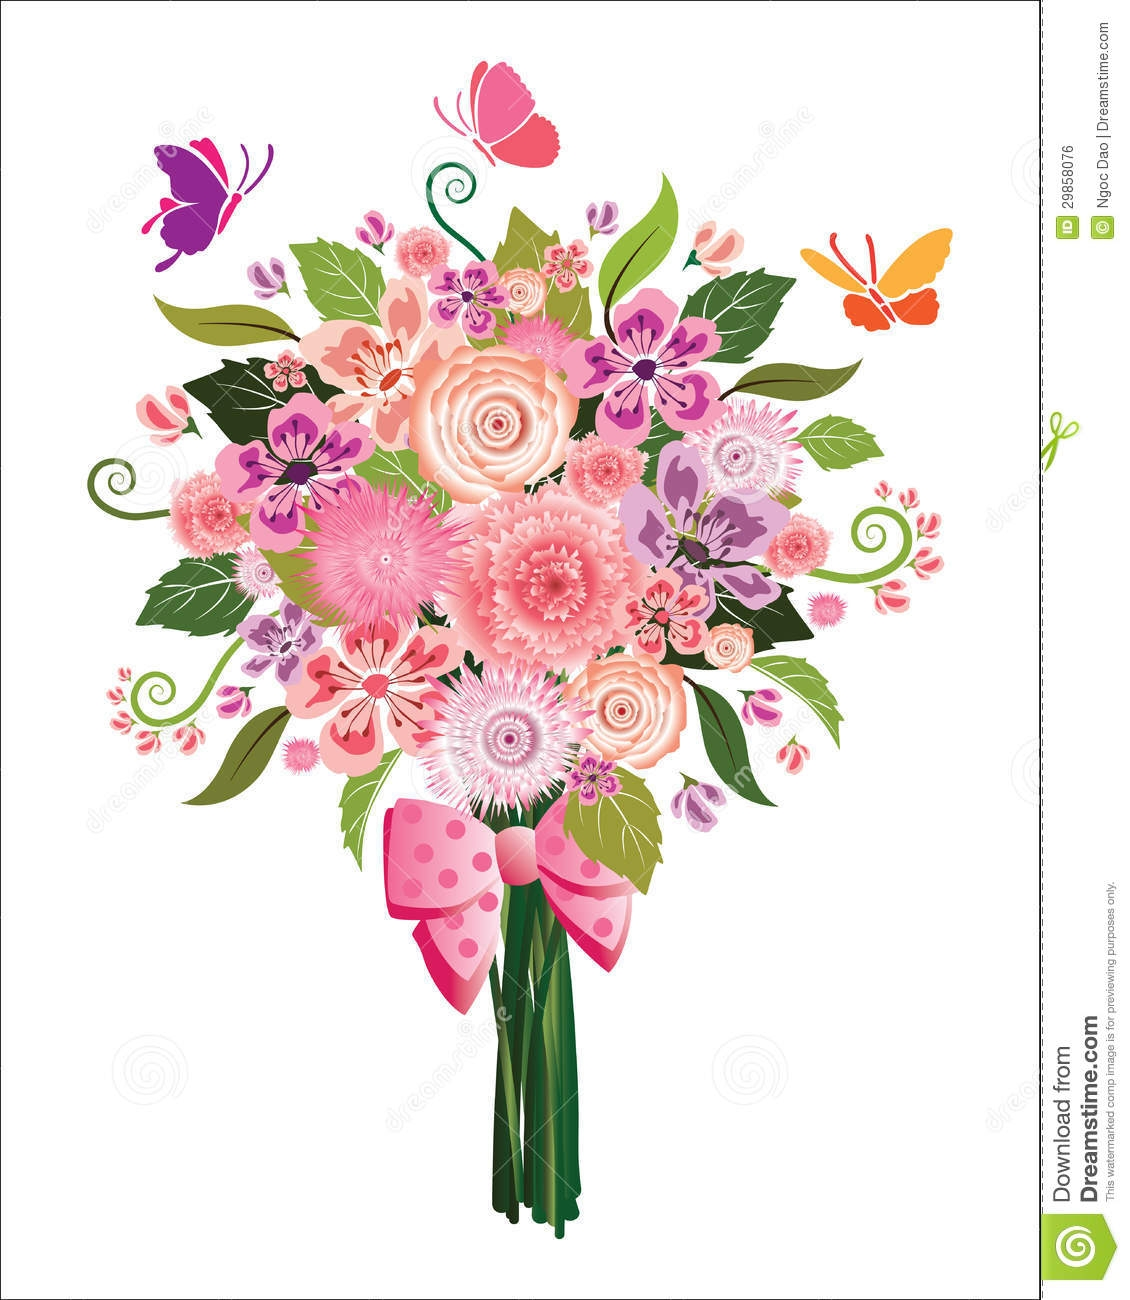 Bouquet of flowers clipart background.